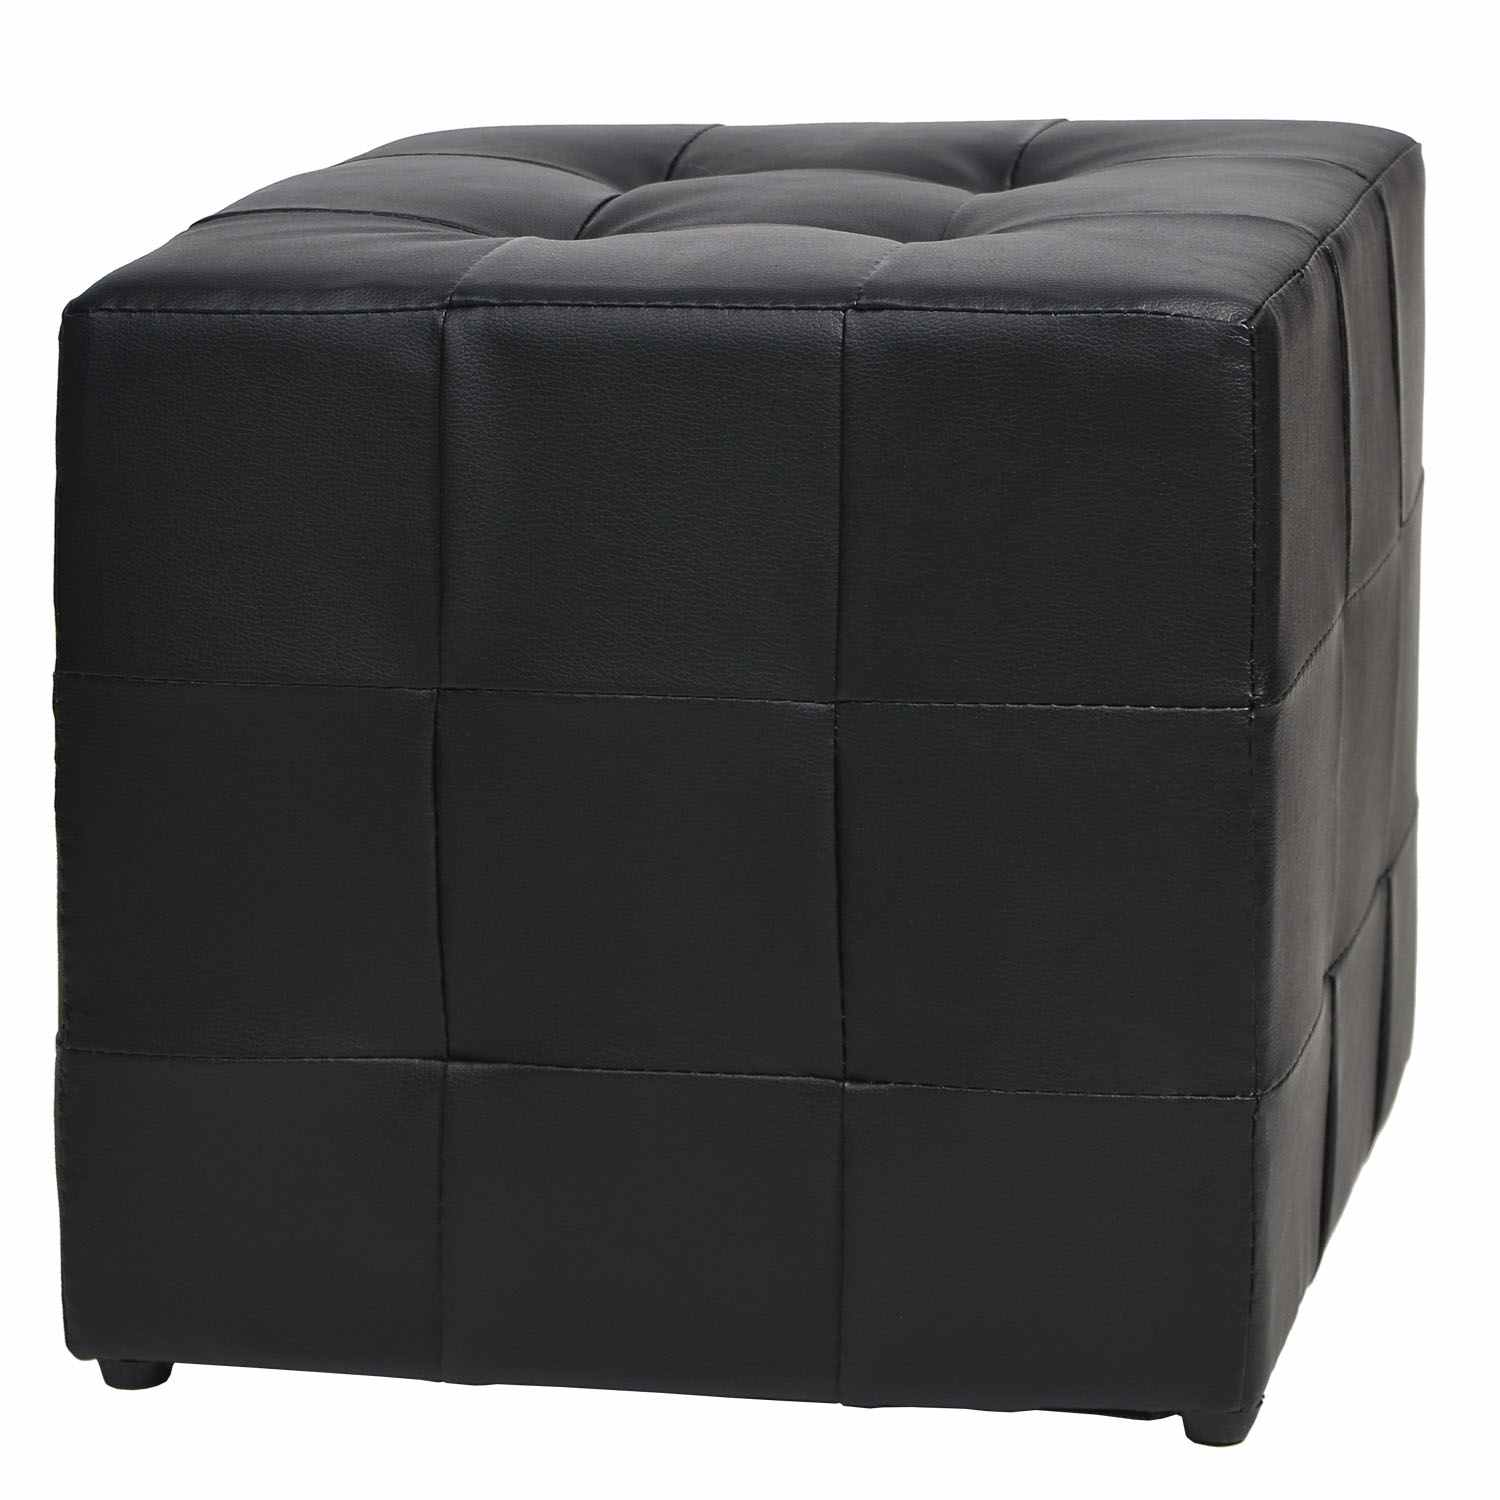 deco in paris pouf carre capitonne noir ducas pouf ducas pu noir. Black Bedroom Furniture Sets. Home Design Ideas